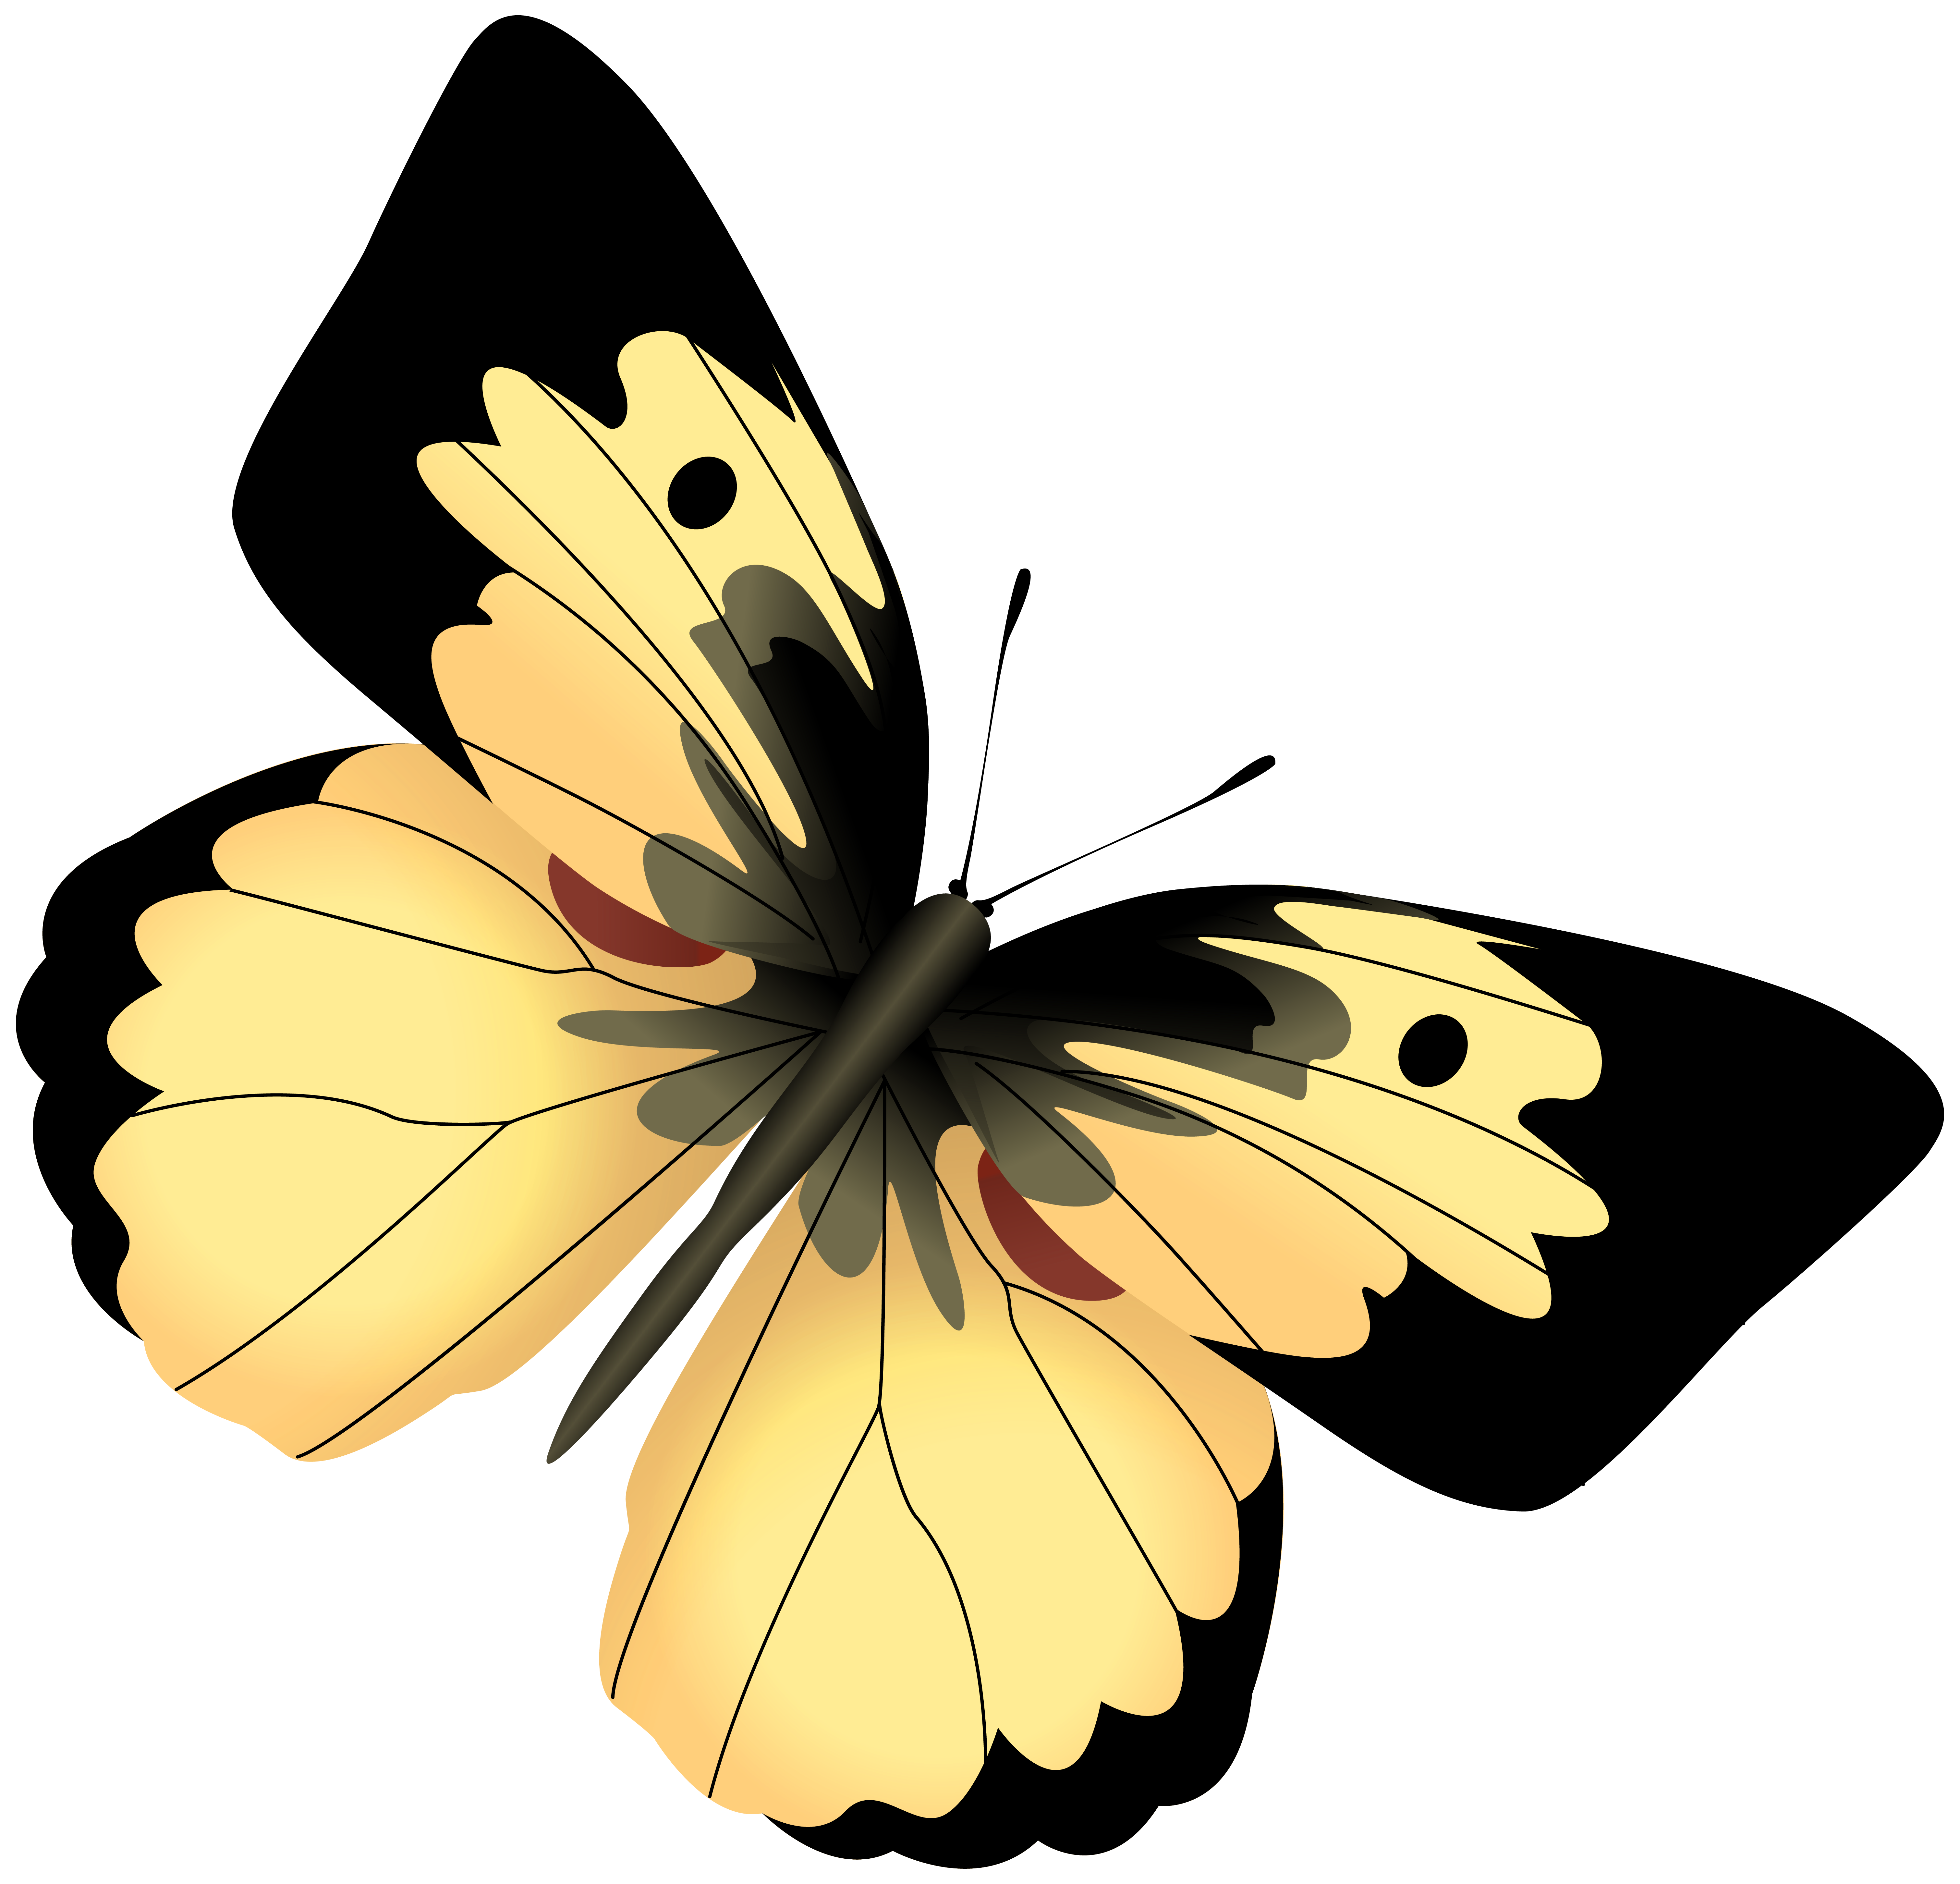 Yellow and Black Butterfly PNG Clipart Image.